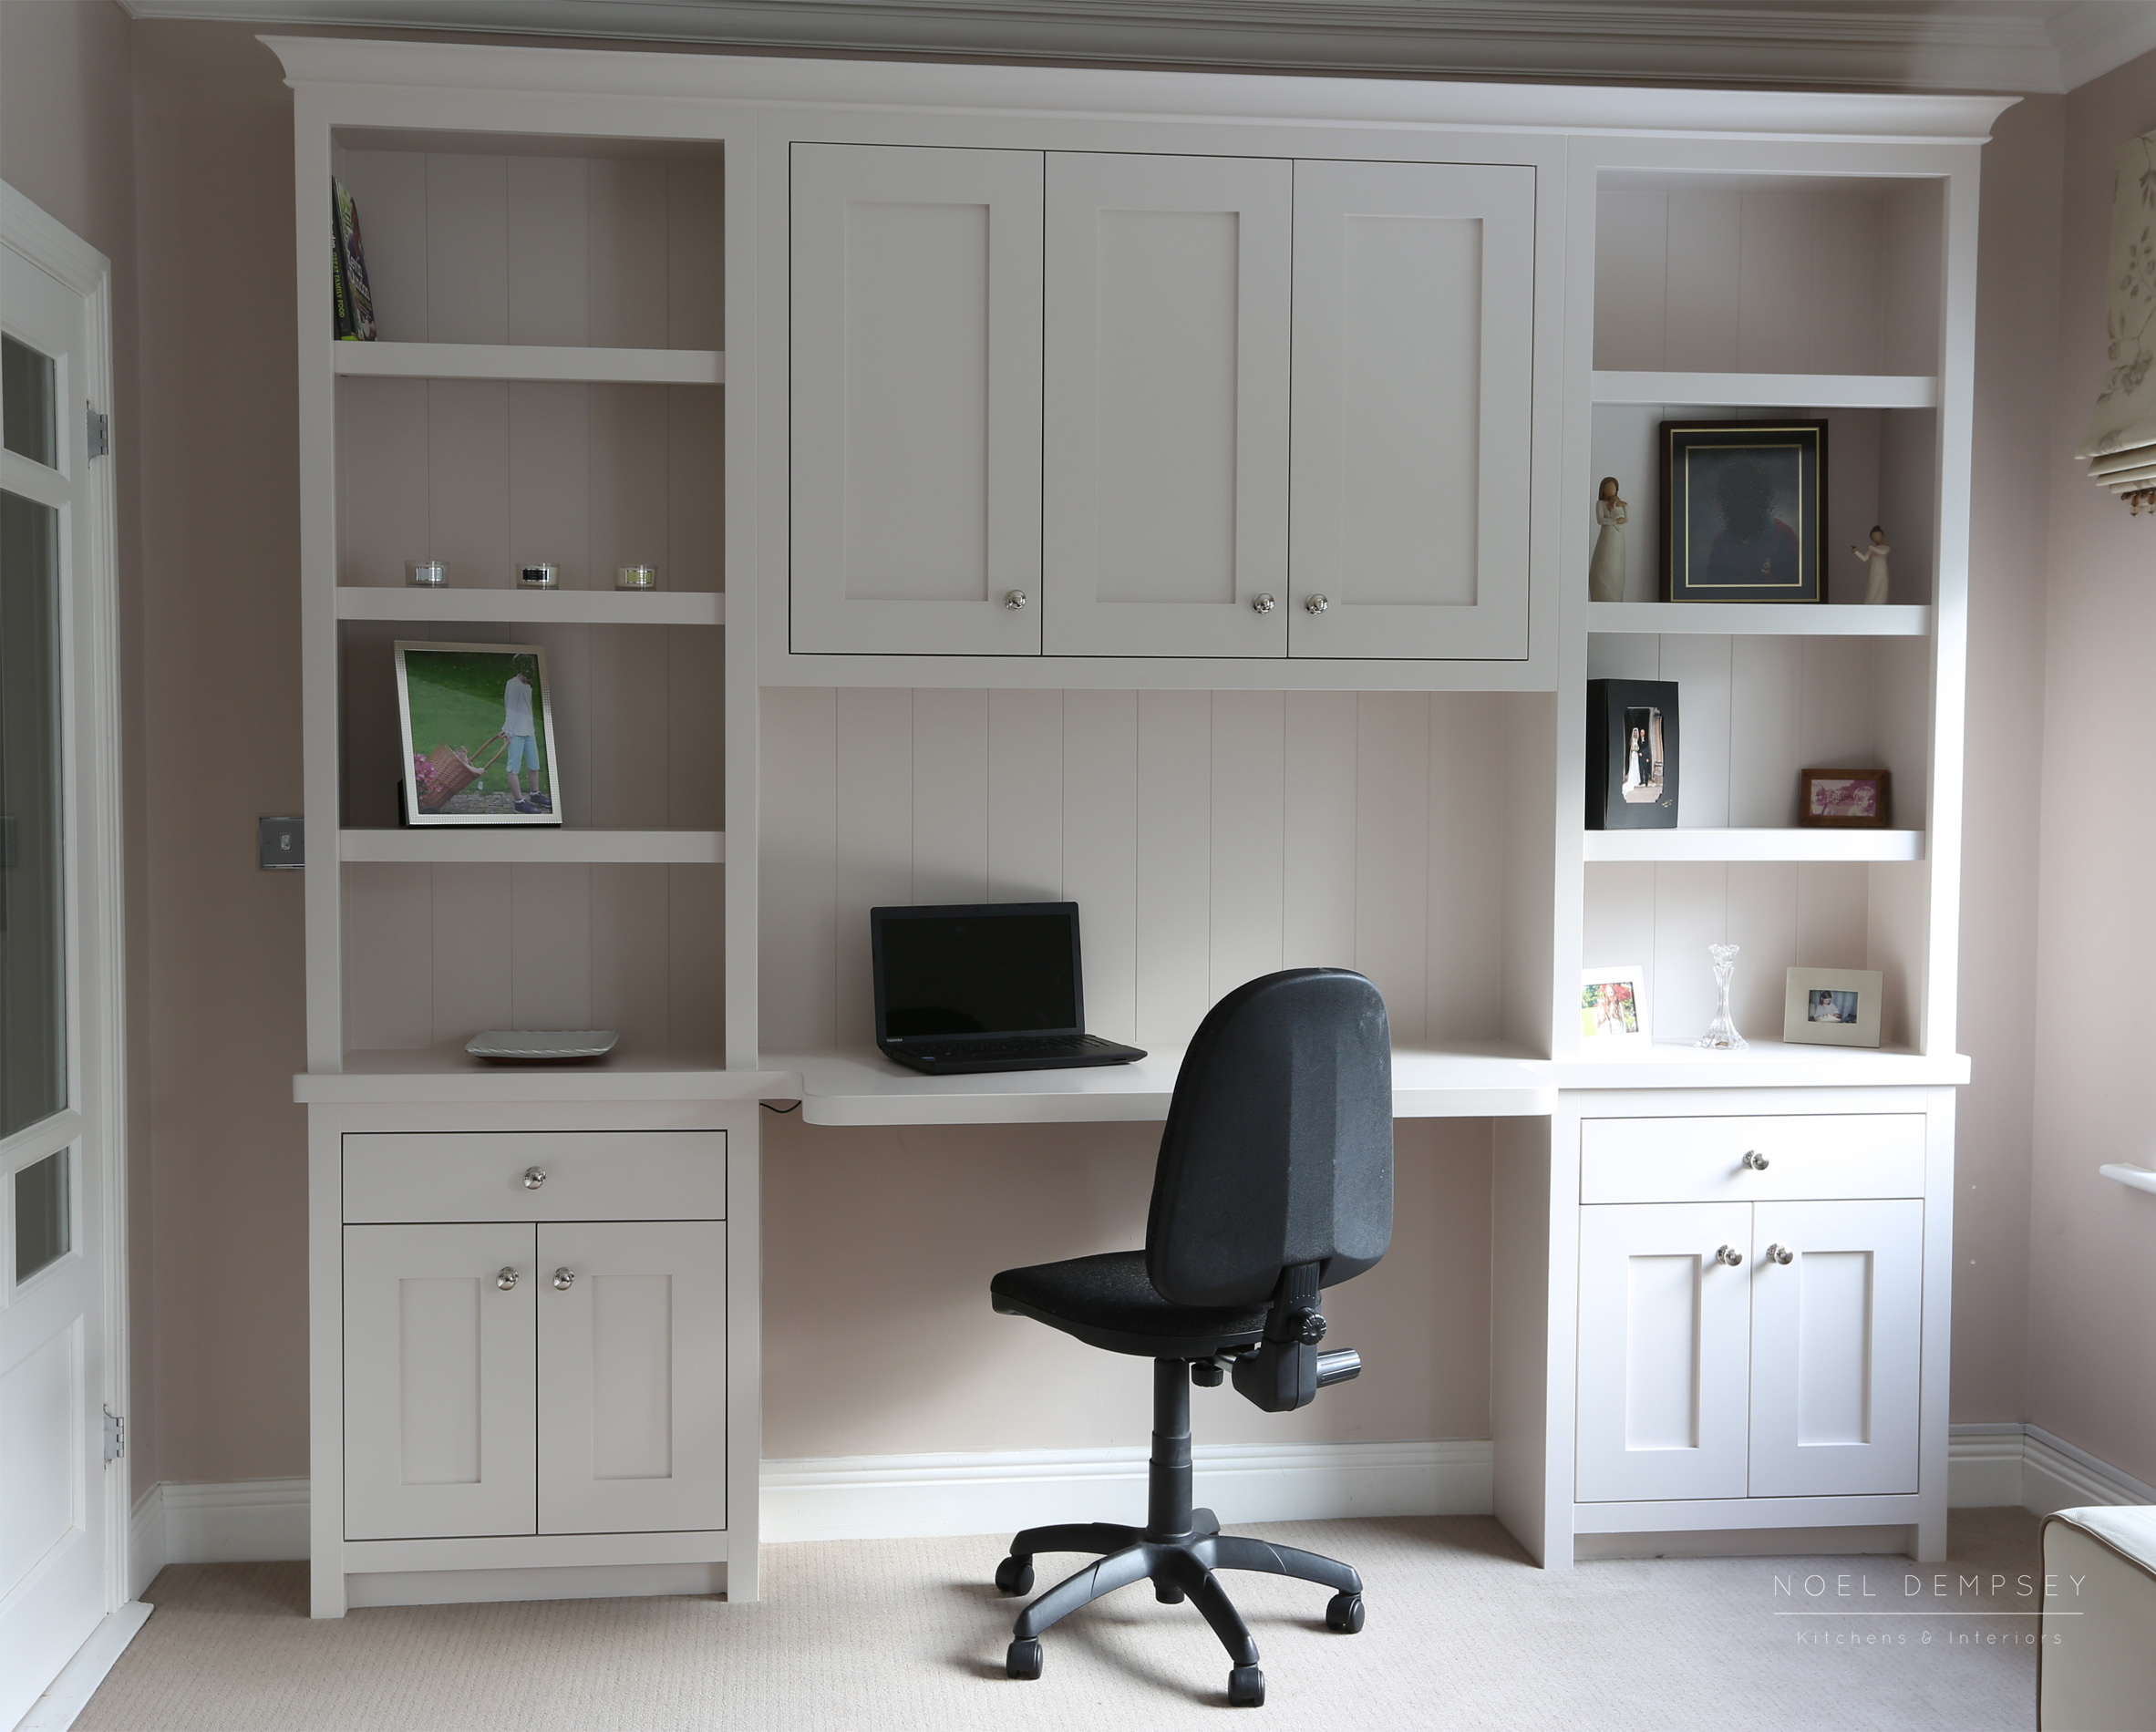 Bespoke home desk design